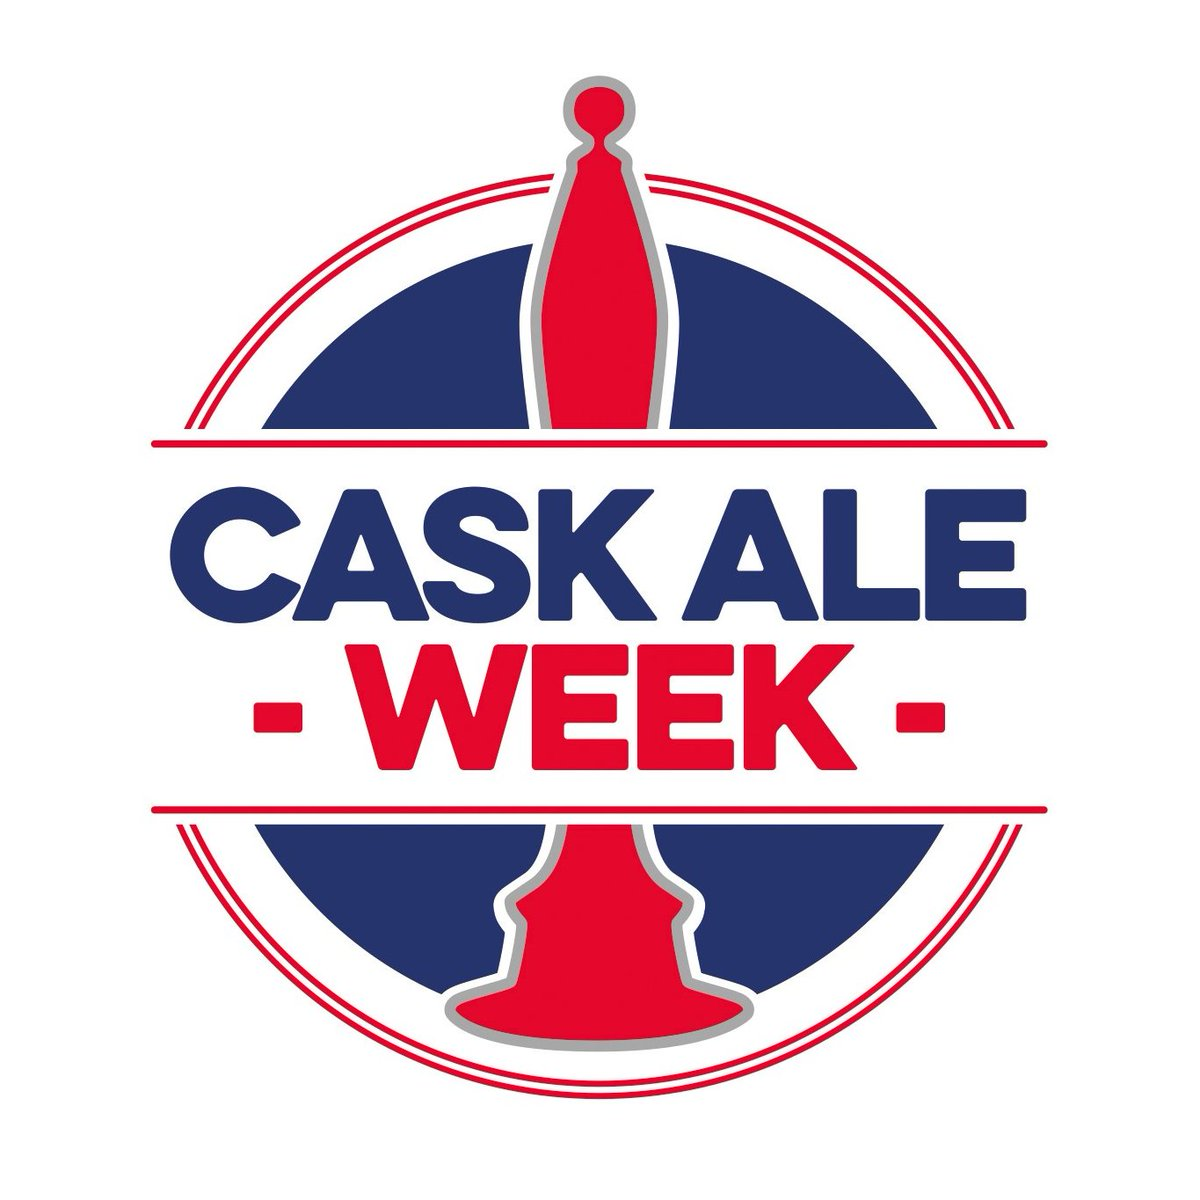 test Twitter Media - Happy Saturday - and day 3 of @caskaleweek! How are you celebrating this weekend? 🍻   https://t.co/eXessv8EAd https://t.co/nkWYdVRDvA